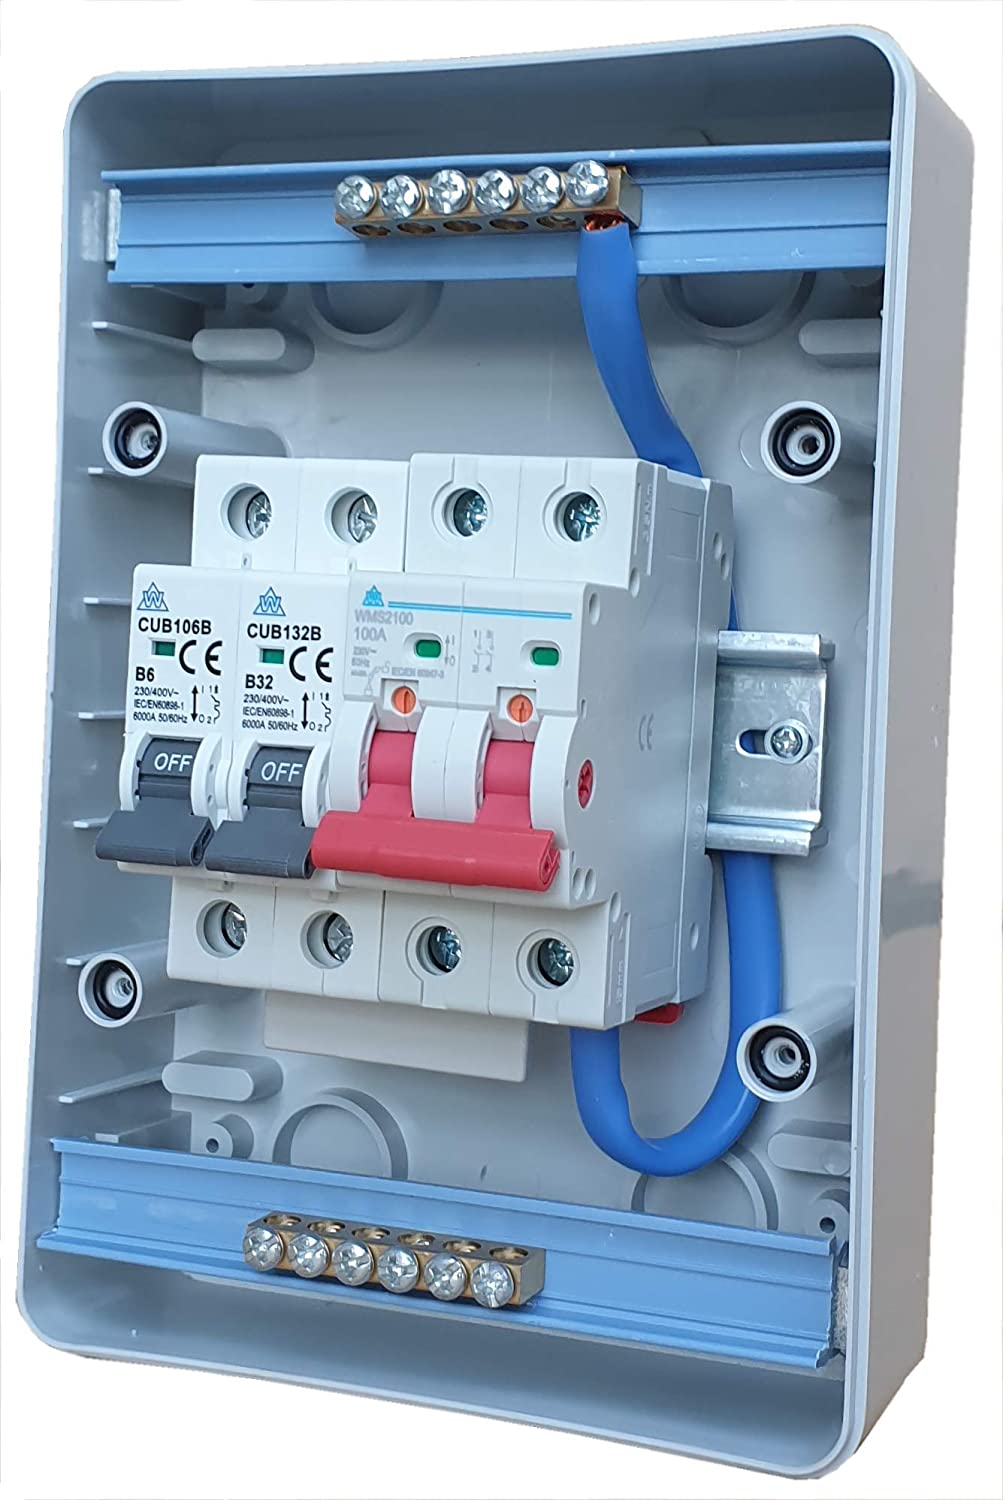 2 Way Consumer Unit 100 Amp Main Isolator Switch with 6 Amp and 32 Amp Type B MCB Circuit Breakers Garage Shed